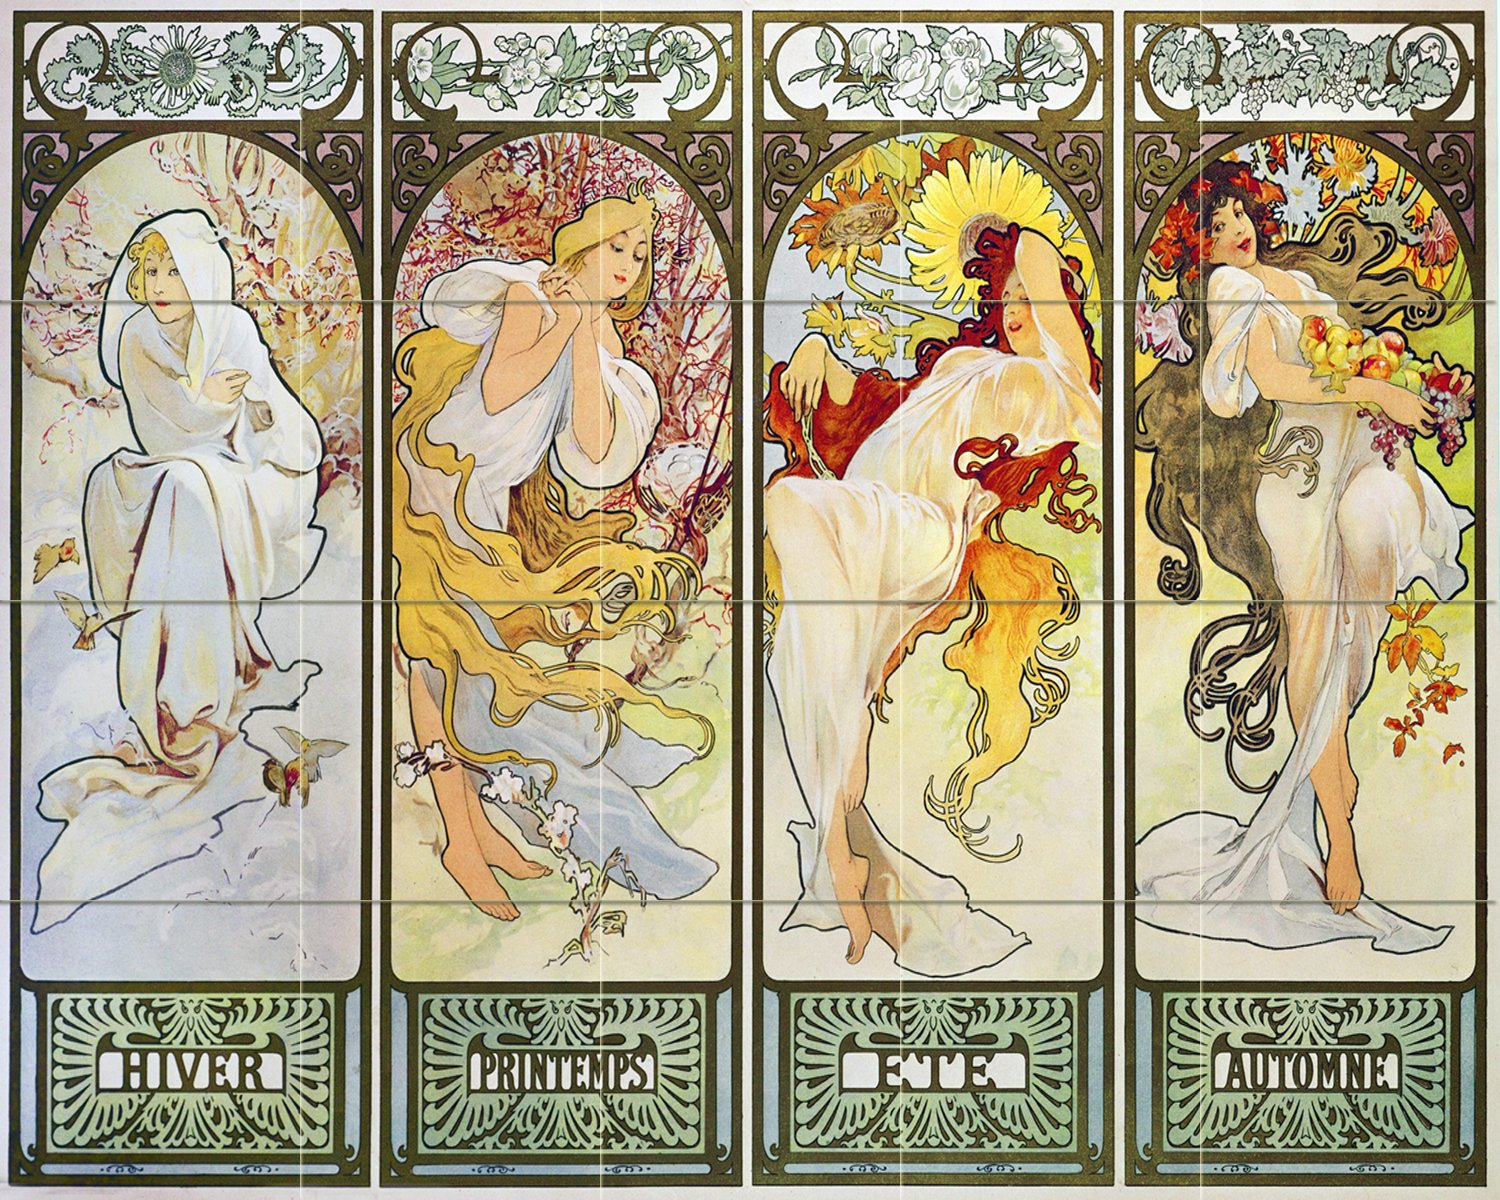 Poster girl four-season frame by Alphonse Mucha Tile Mural Kitchen Bathroom Wall Backsplash Behind Stove Range Sink Splashback 5x4 4'' Marble, Matte